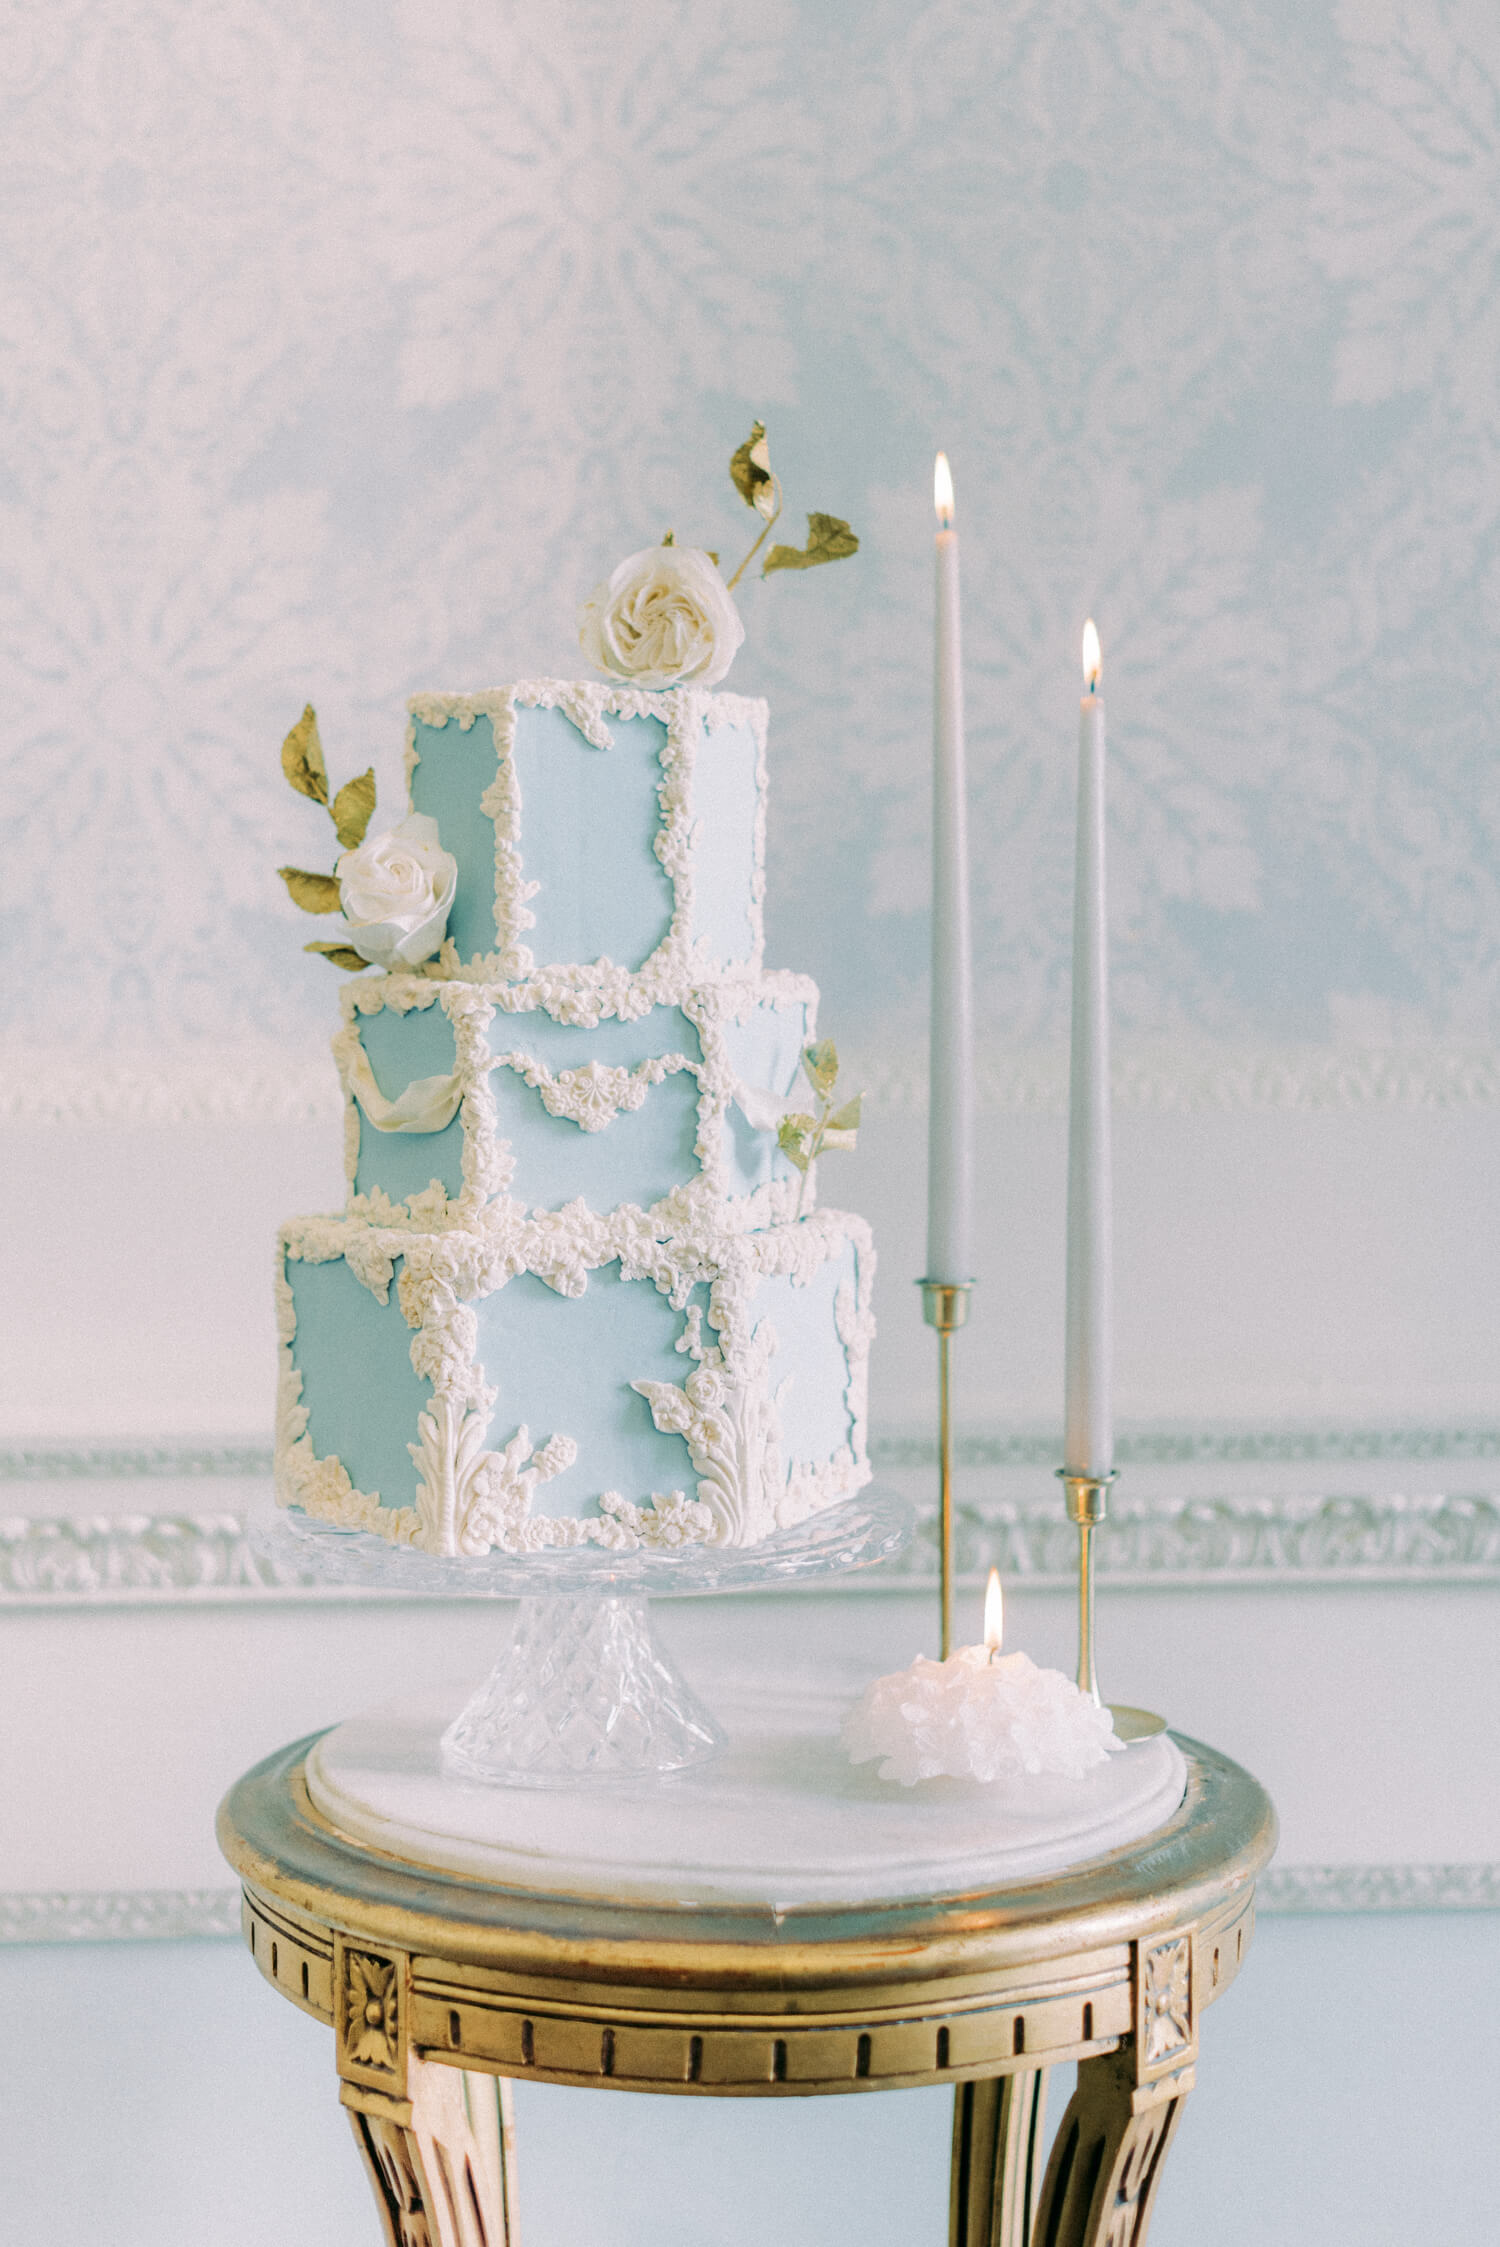 royal wedding inspired ideas - 3 tier luxury blue fondant with white molded cameo and white rose bud sugar flowers, gold leaf on a crystal cake stand, also in photo are two tulip brass candlestick holders with grey ester and erik tapered candles. Cake by Trouvaille bakery, photo by Cristina Ilao Photography, styling by East Made Event Co, Venue: Hedsor House